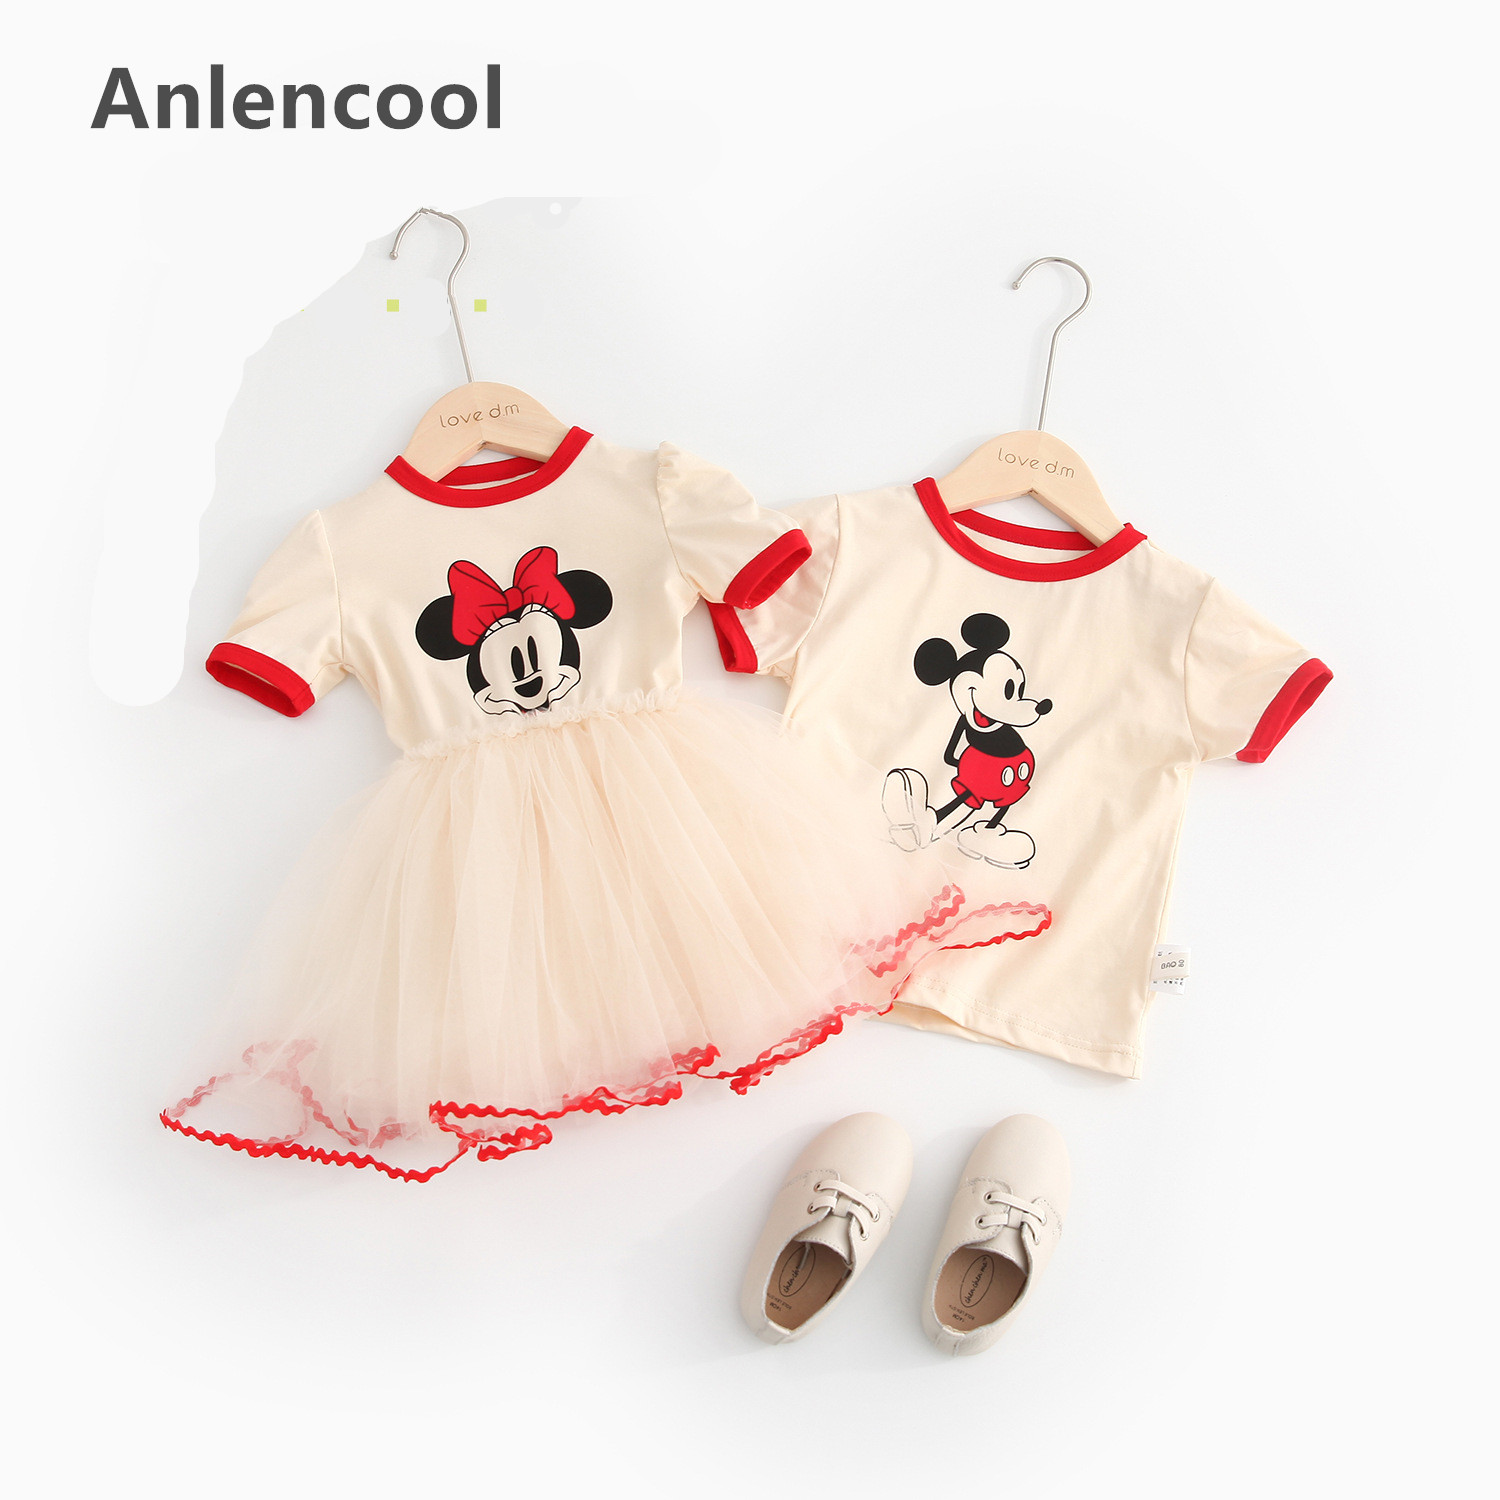 Anlencool Minnie & Mouse Clothes Set Kids Baby Girls Boys New Summer Outfits Clothes Short Sleeve T-shirt Tops Tutu Party DressAnlencool Minnie & Mouse Clothes Set Kids Baby Girls Boys New Summer Outfits Clothes Short Sleeve T-shirt Tops Tutu Party Dress